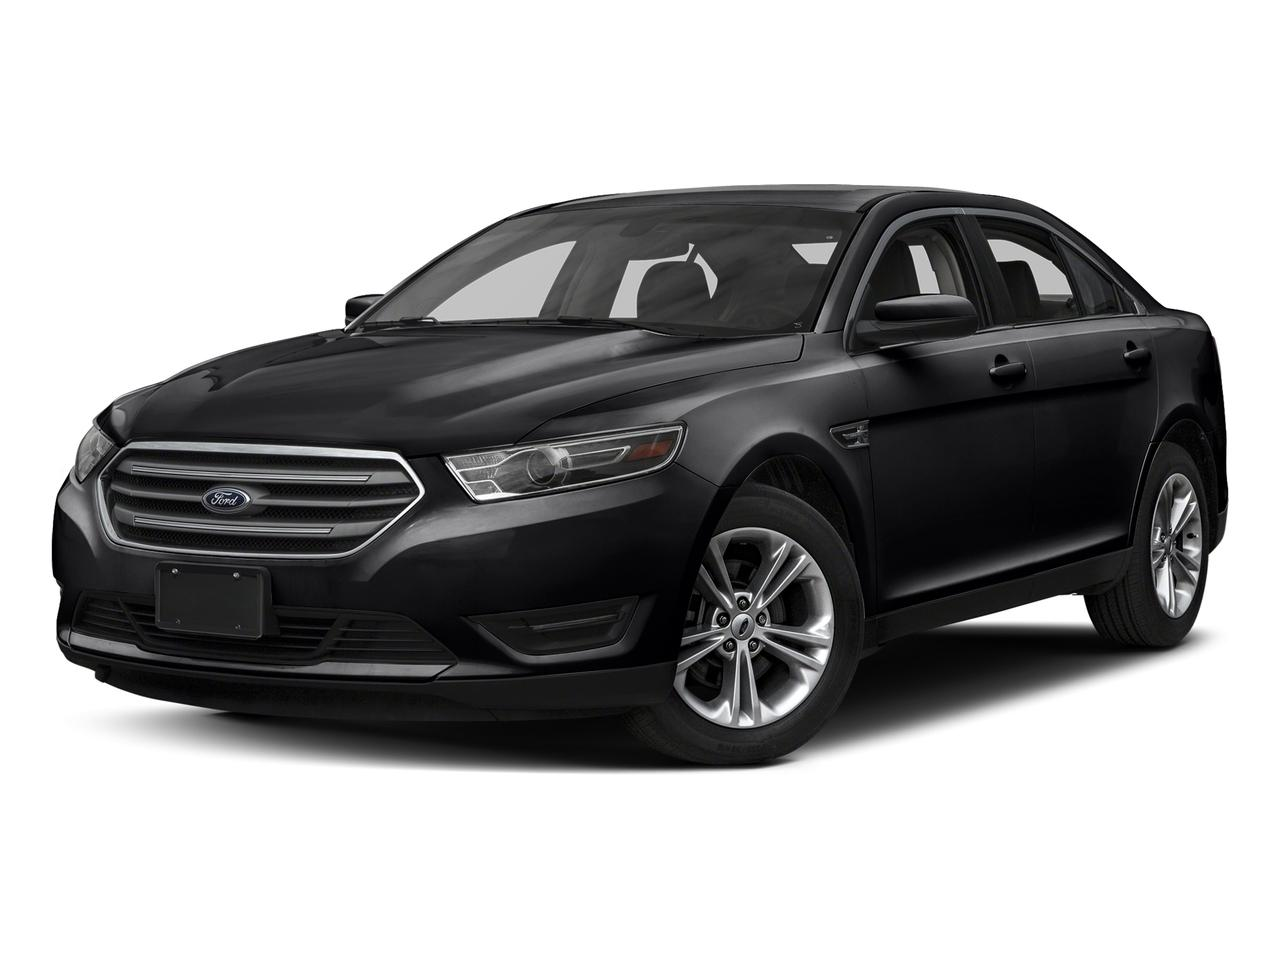 2017 Ford Taurus Vehicle Photo in Merriam, KS 66203